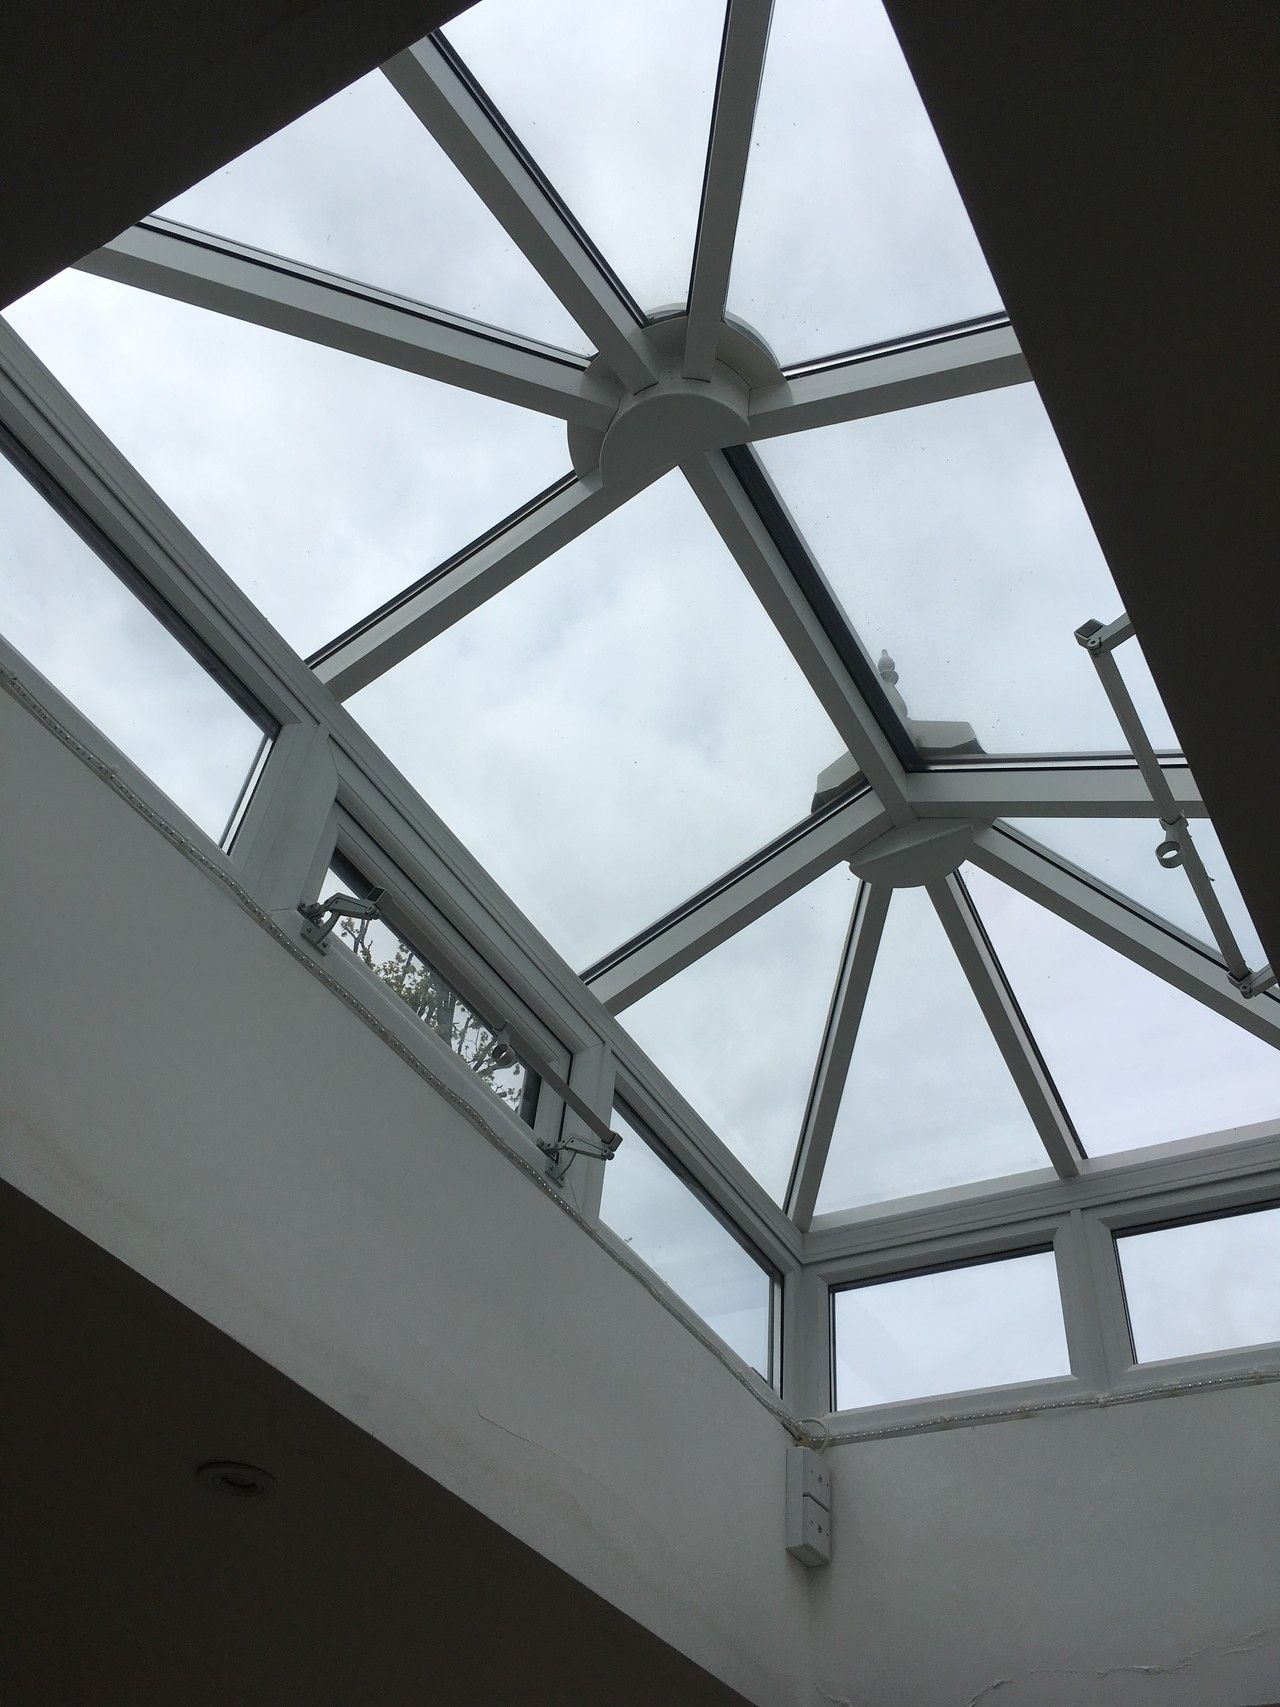 If You Have Roof Lanterns Window Film Is The Ideal Way To Maintain The View And The Natural Light Levels While Reducing Roof Architecture Roofing Roof Design